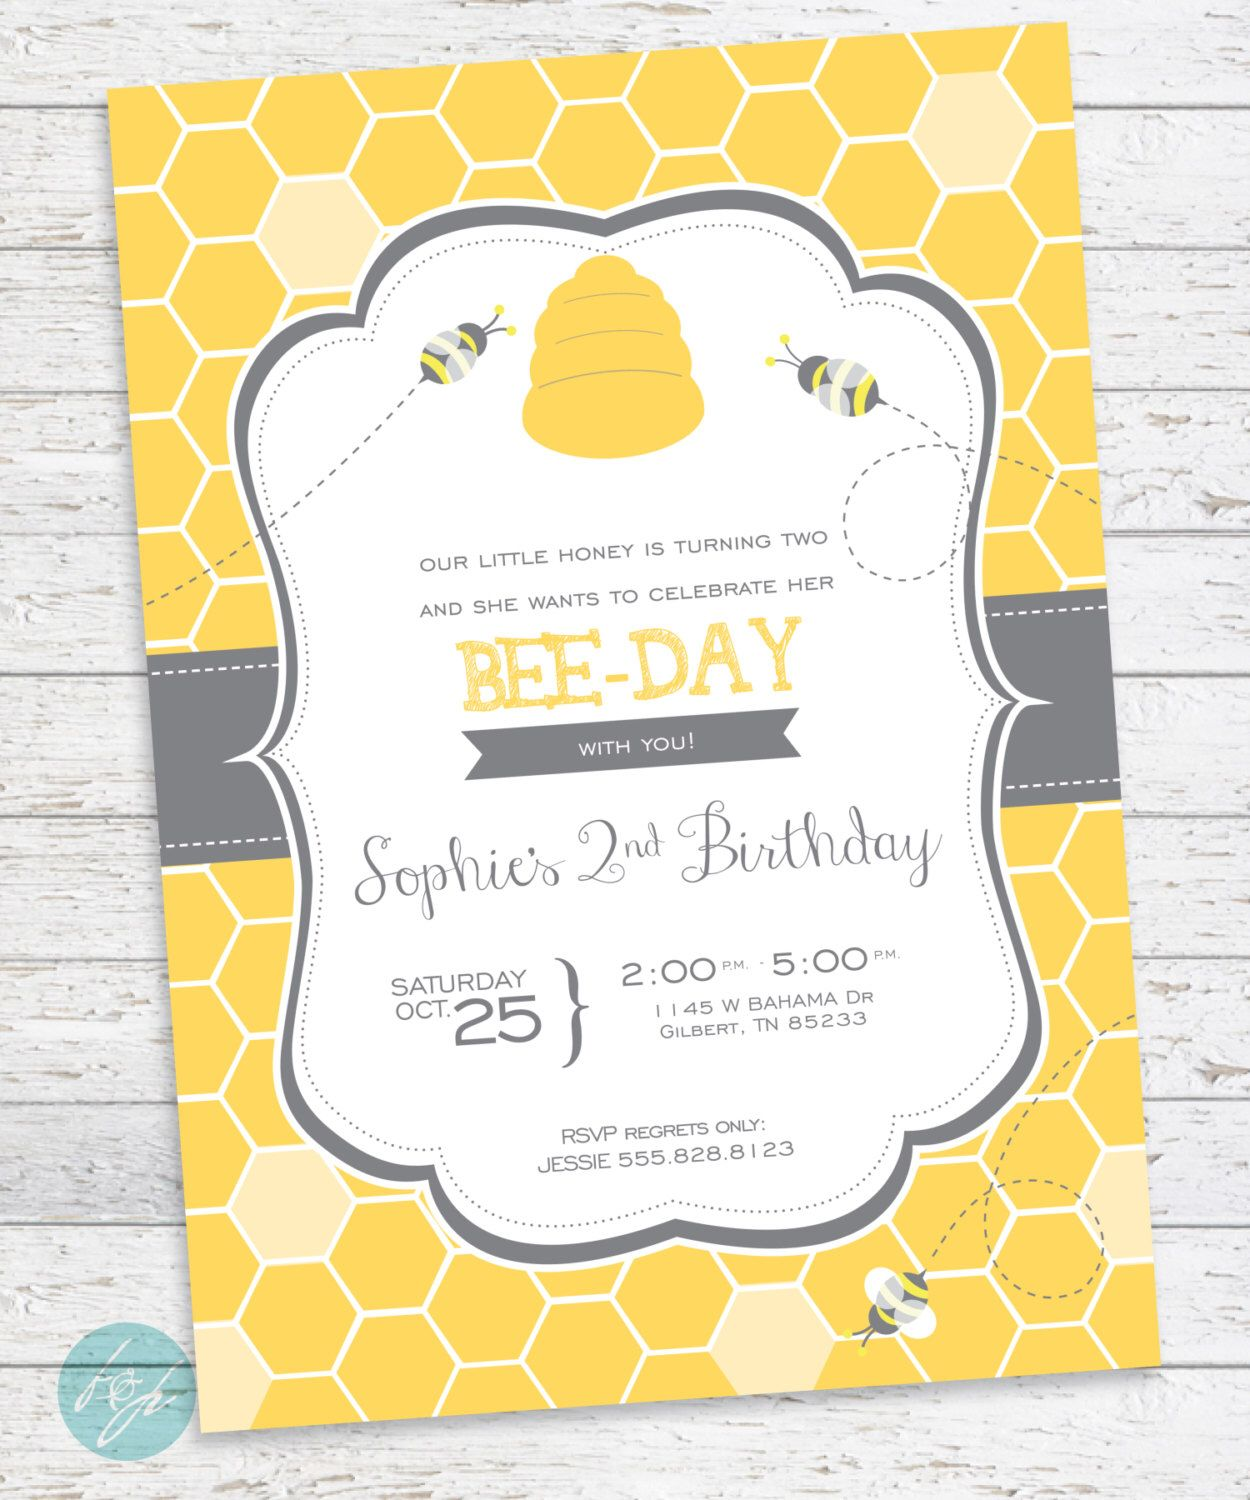 Bumble Bee Birthday Invitation, Bumble Bee Party, Bumble Bee, Summer ...